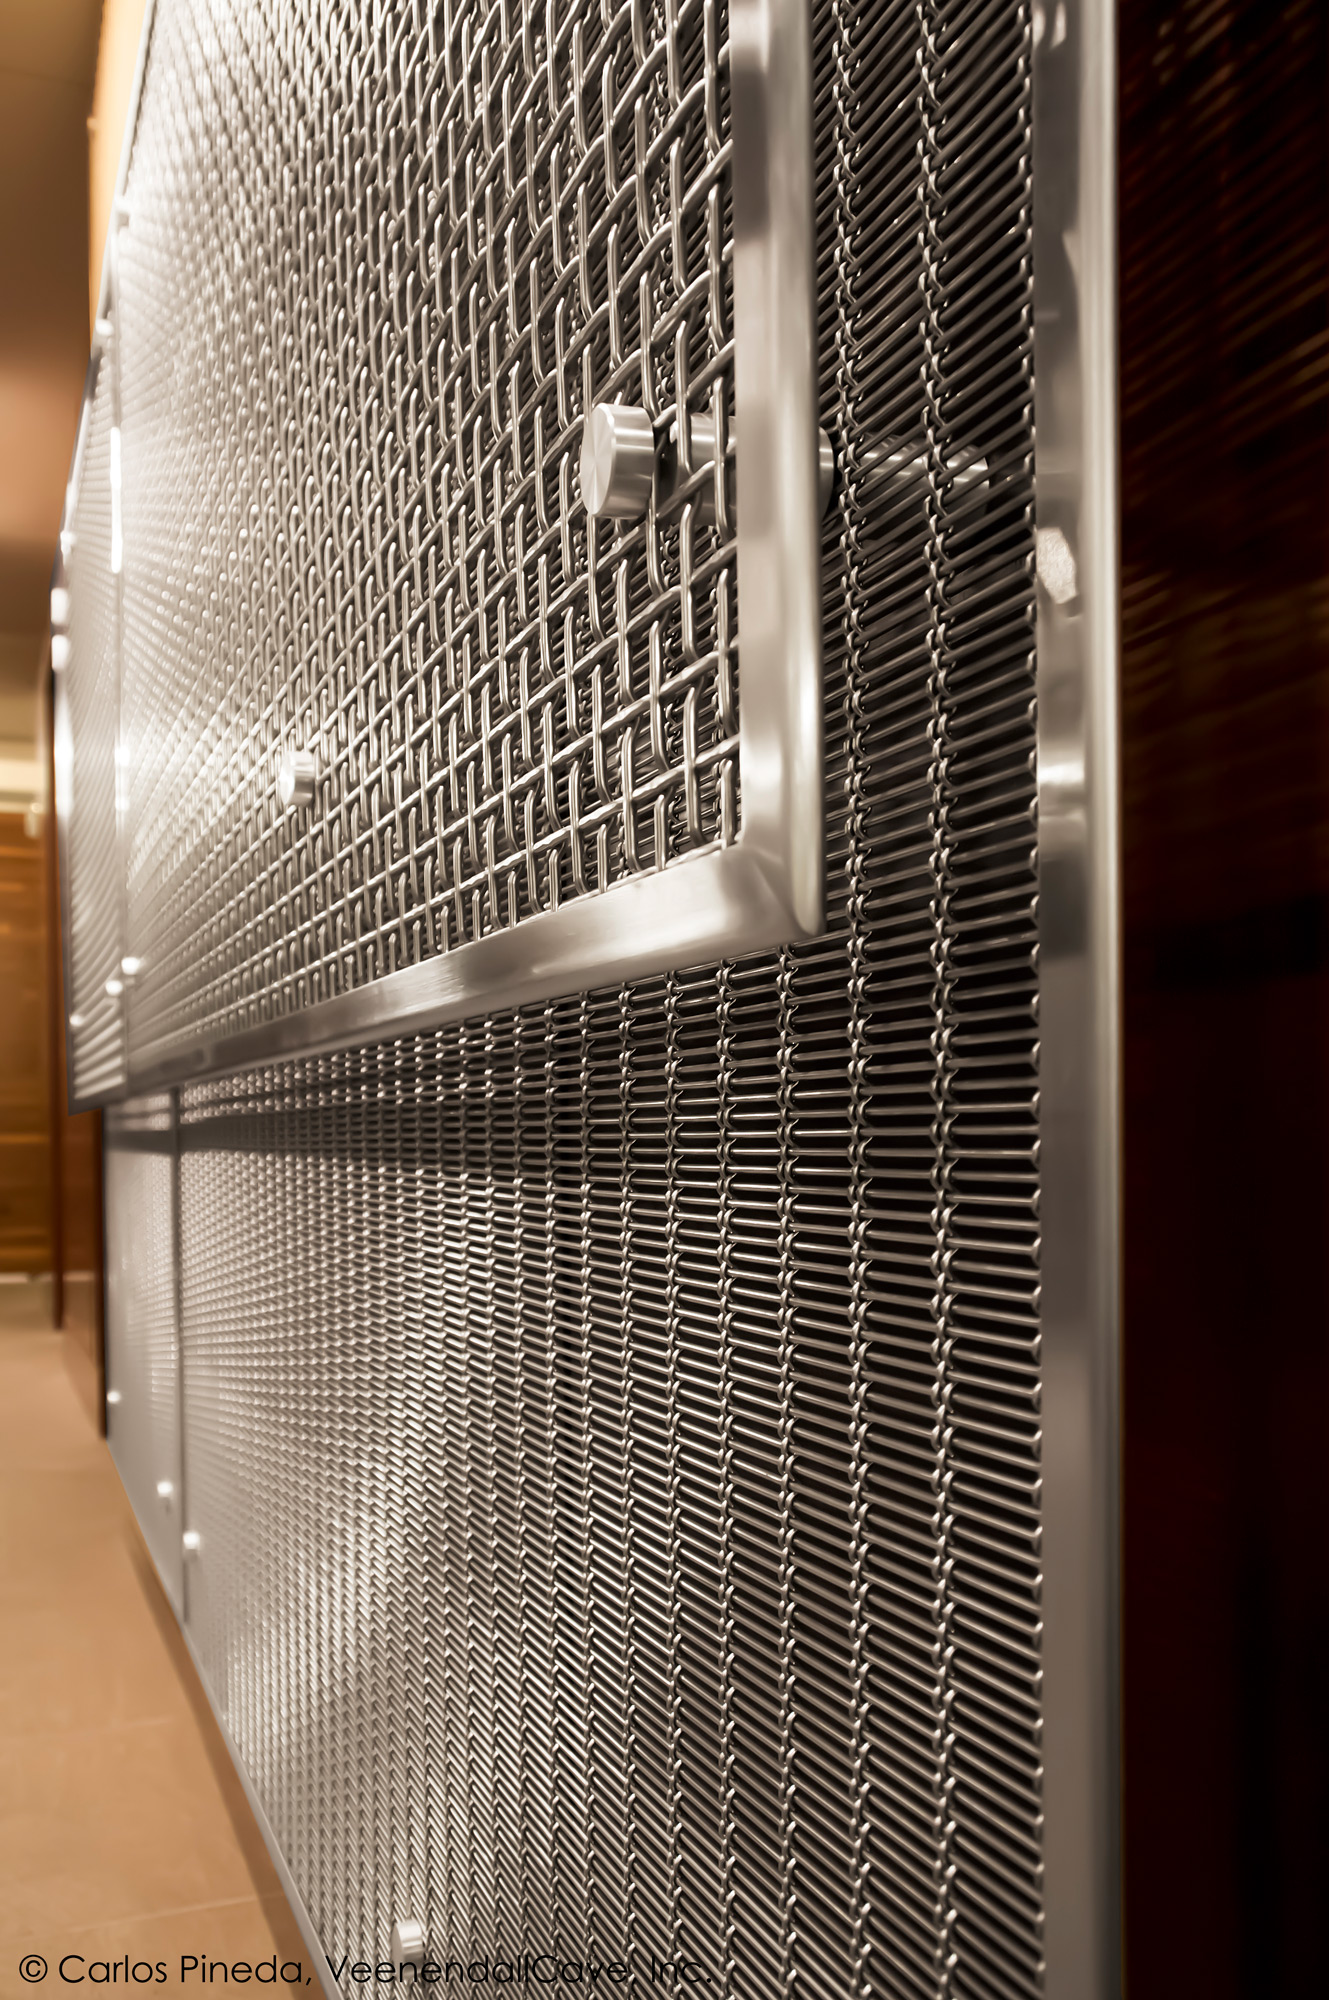 Two different styles of Banker Wire woven wire mesh were layered over mahogany for a contemporary aesthetic.